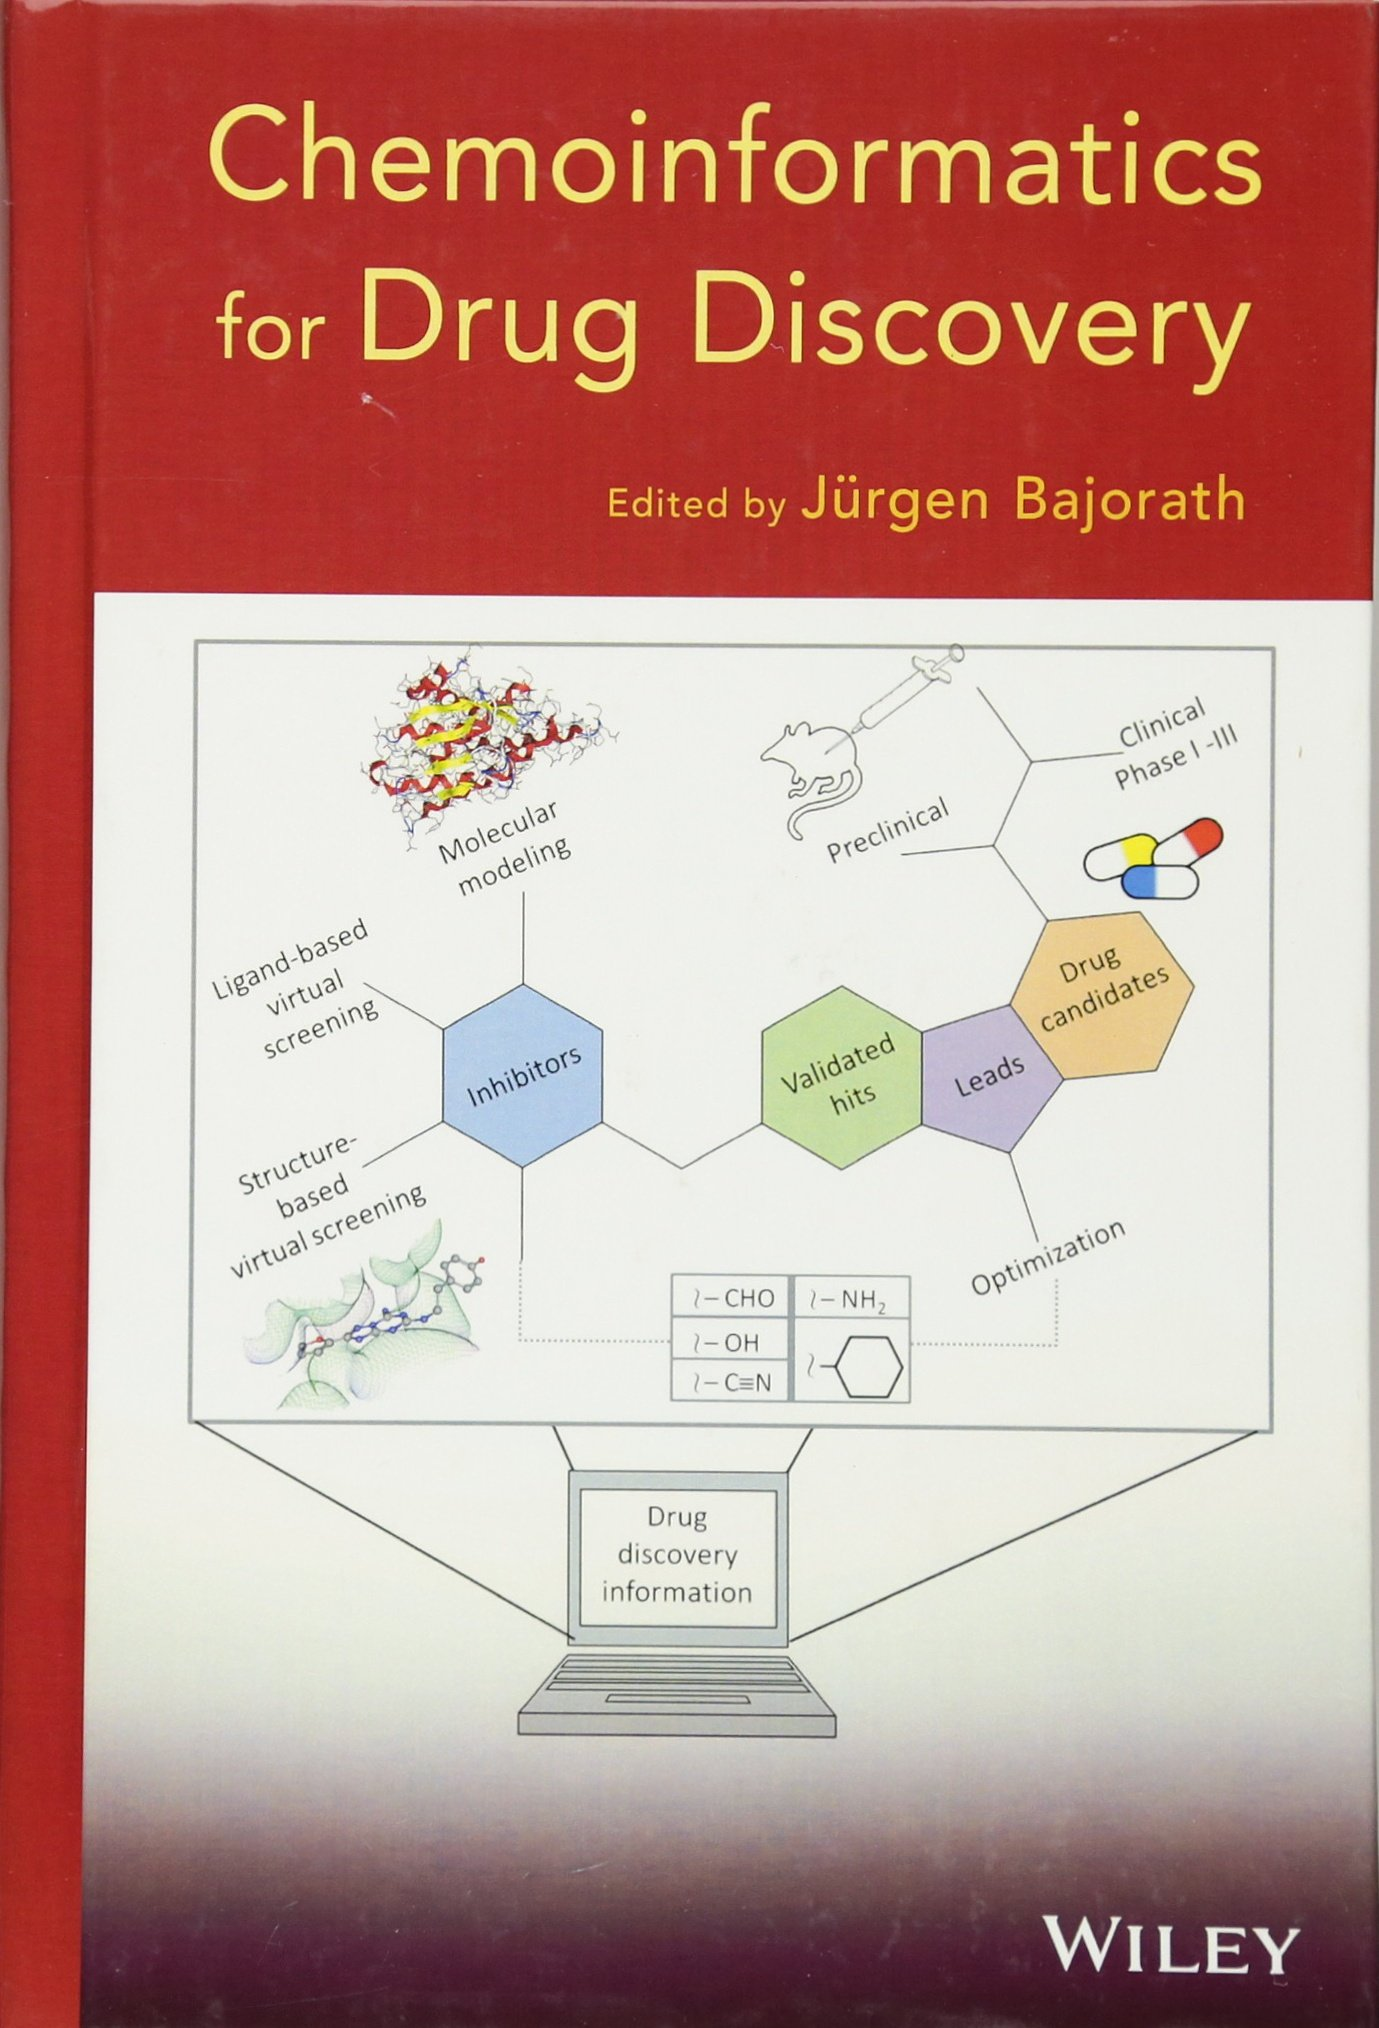 Chemoinformatics for Drug Discovery